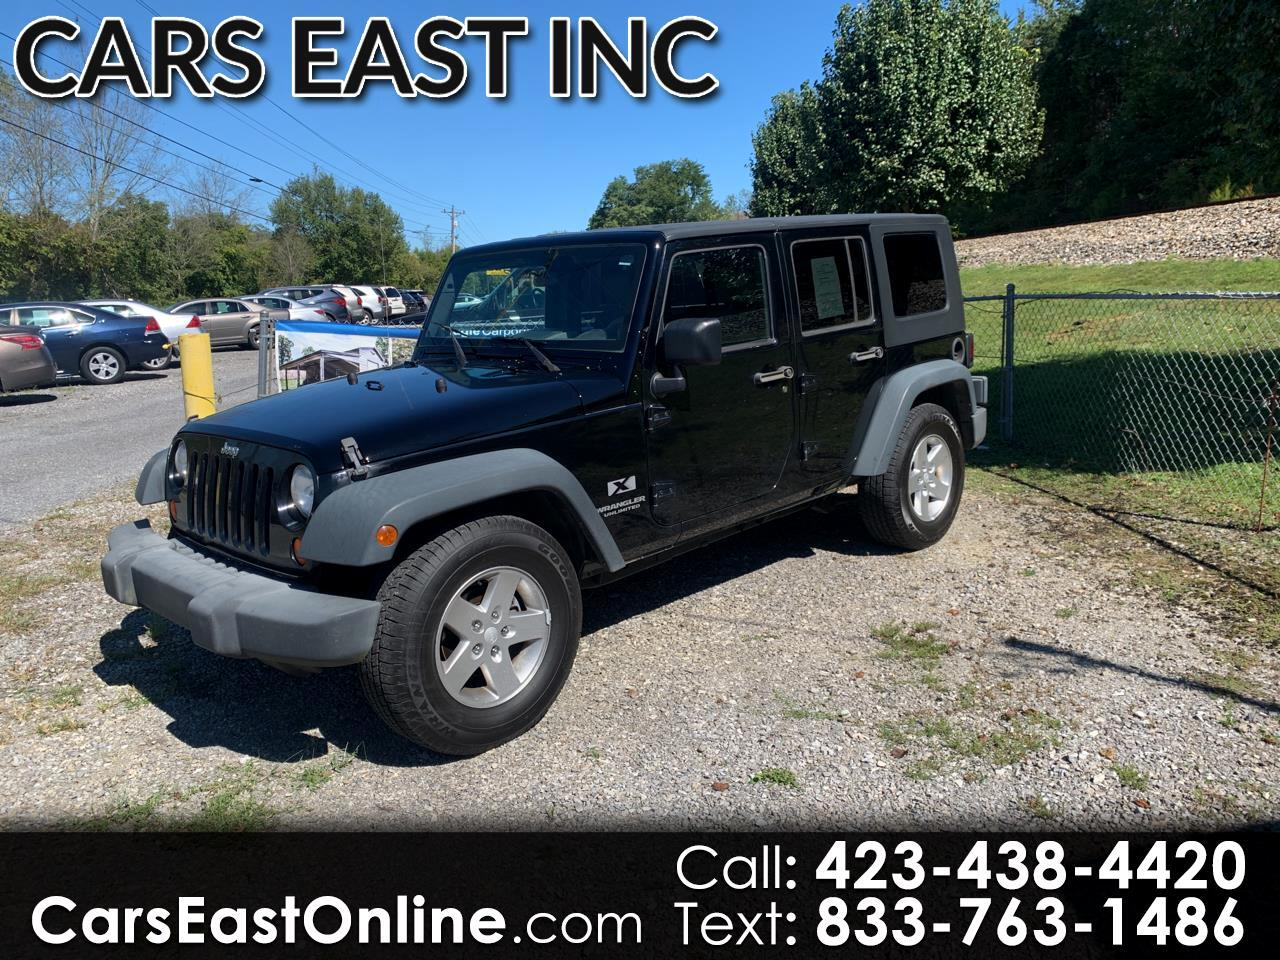 Jeep Wrangler RWD 4dr Unlimited X 2008